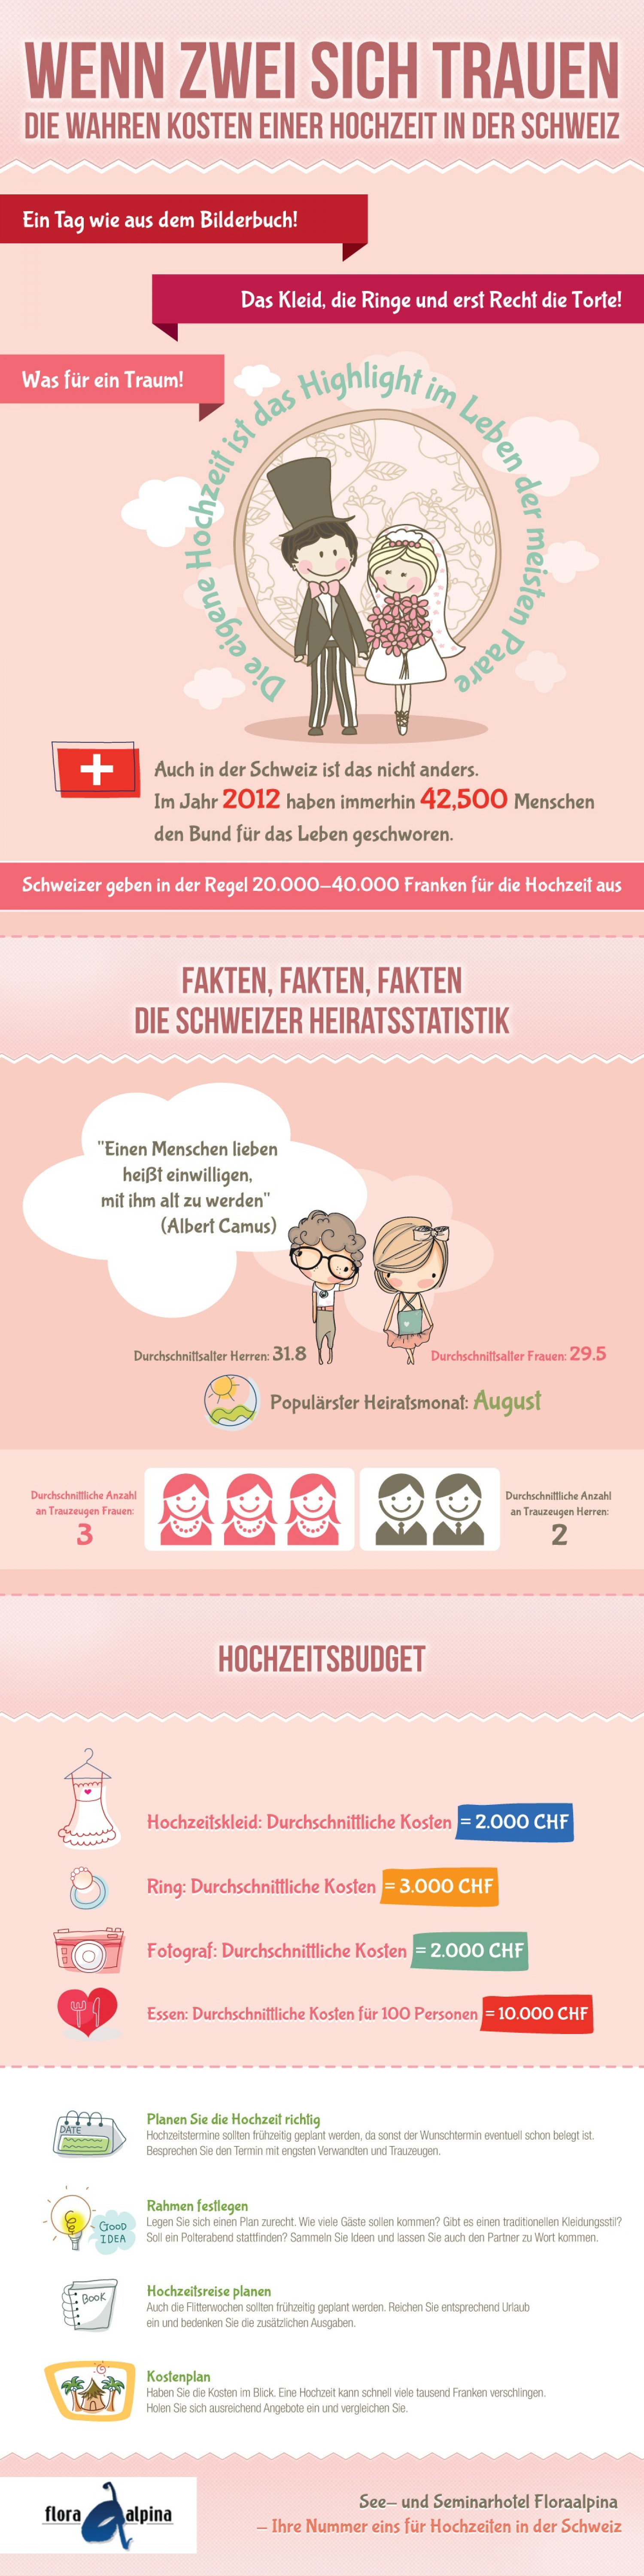 Wedding in Switzerland Infographic